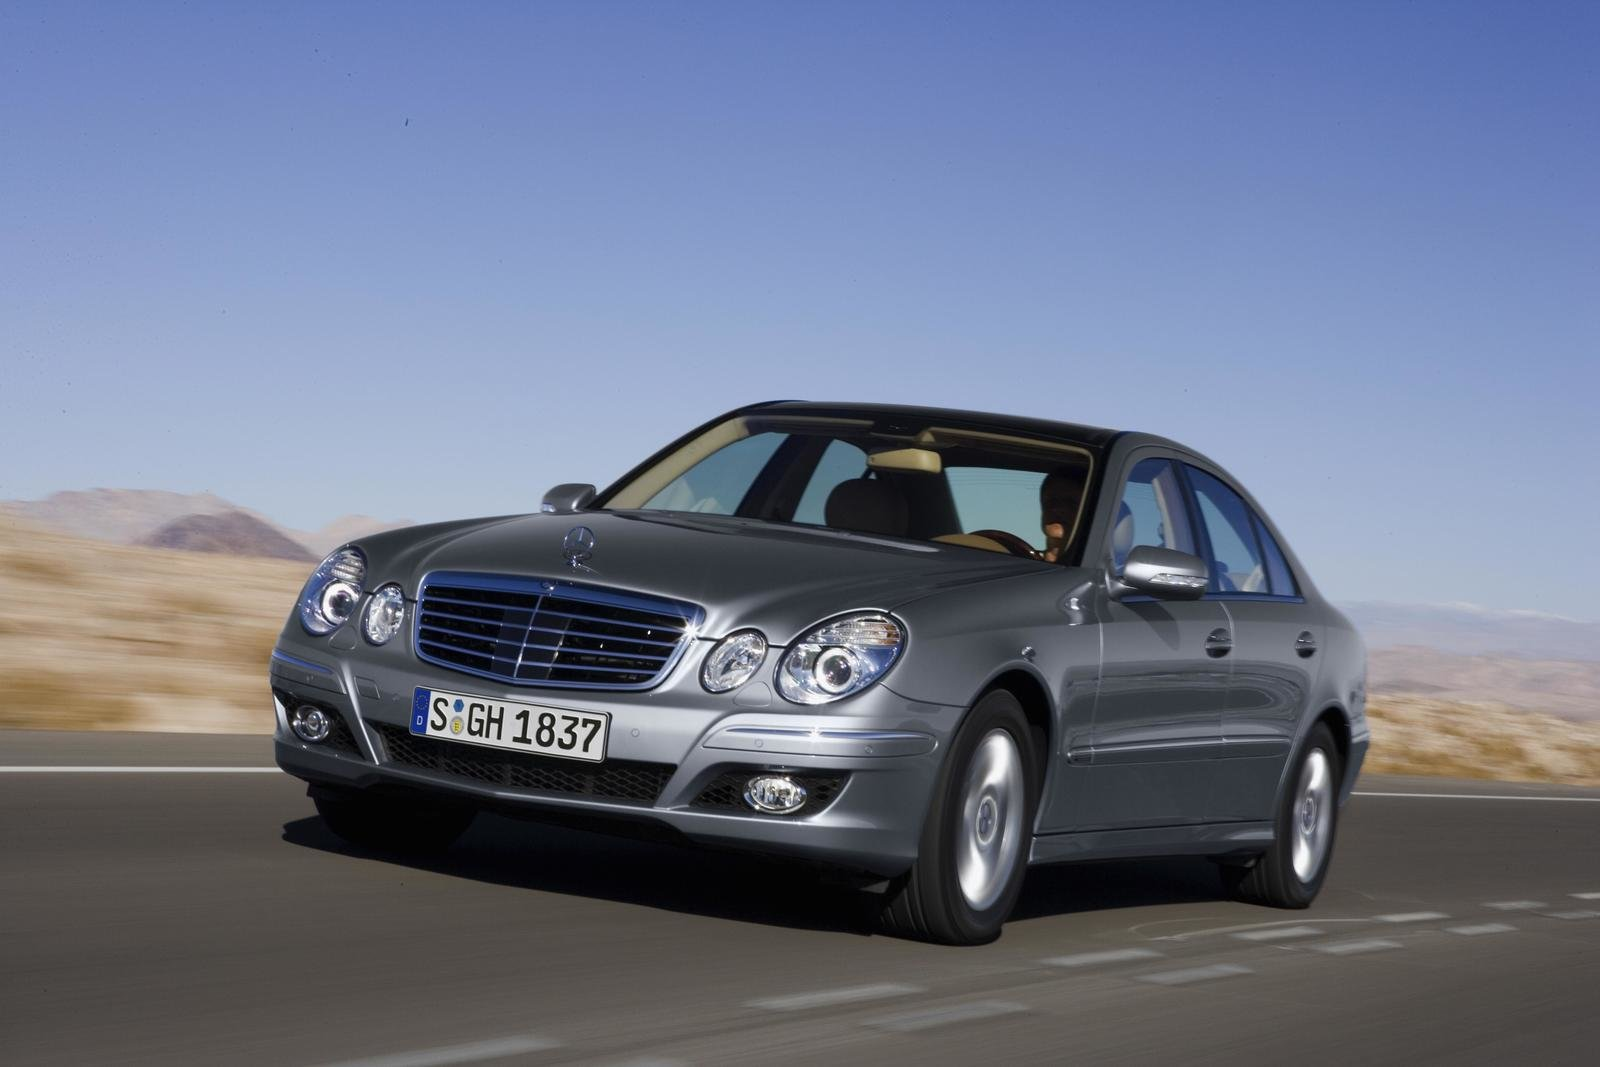 2007 mercedes benz e 200 ngt review top speed. Black Bedroom Furniture Sets. Home Design Ideas